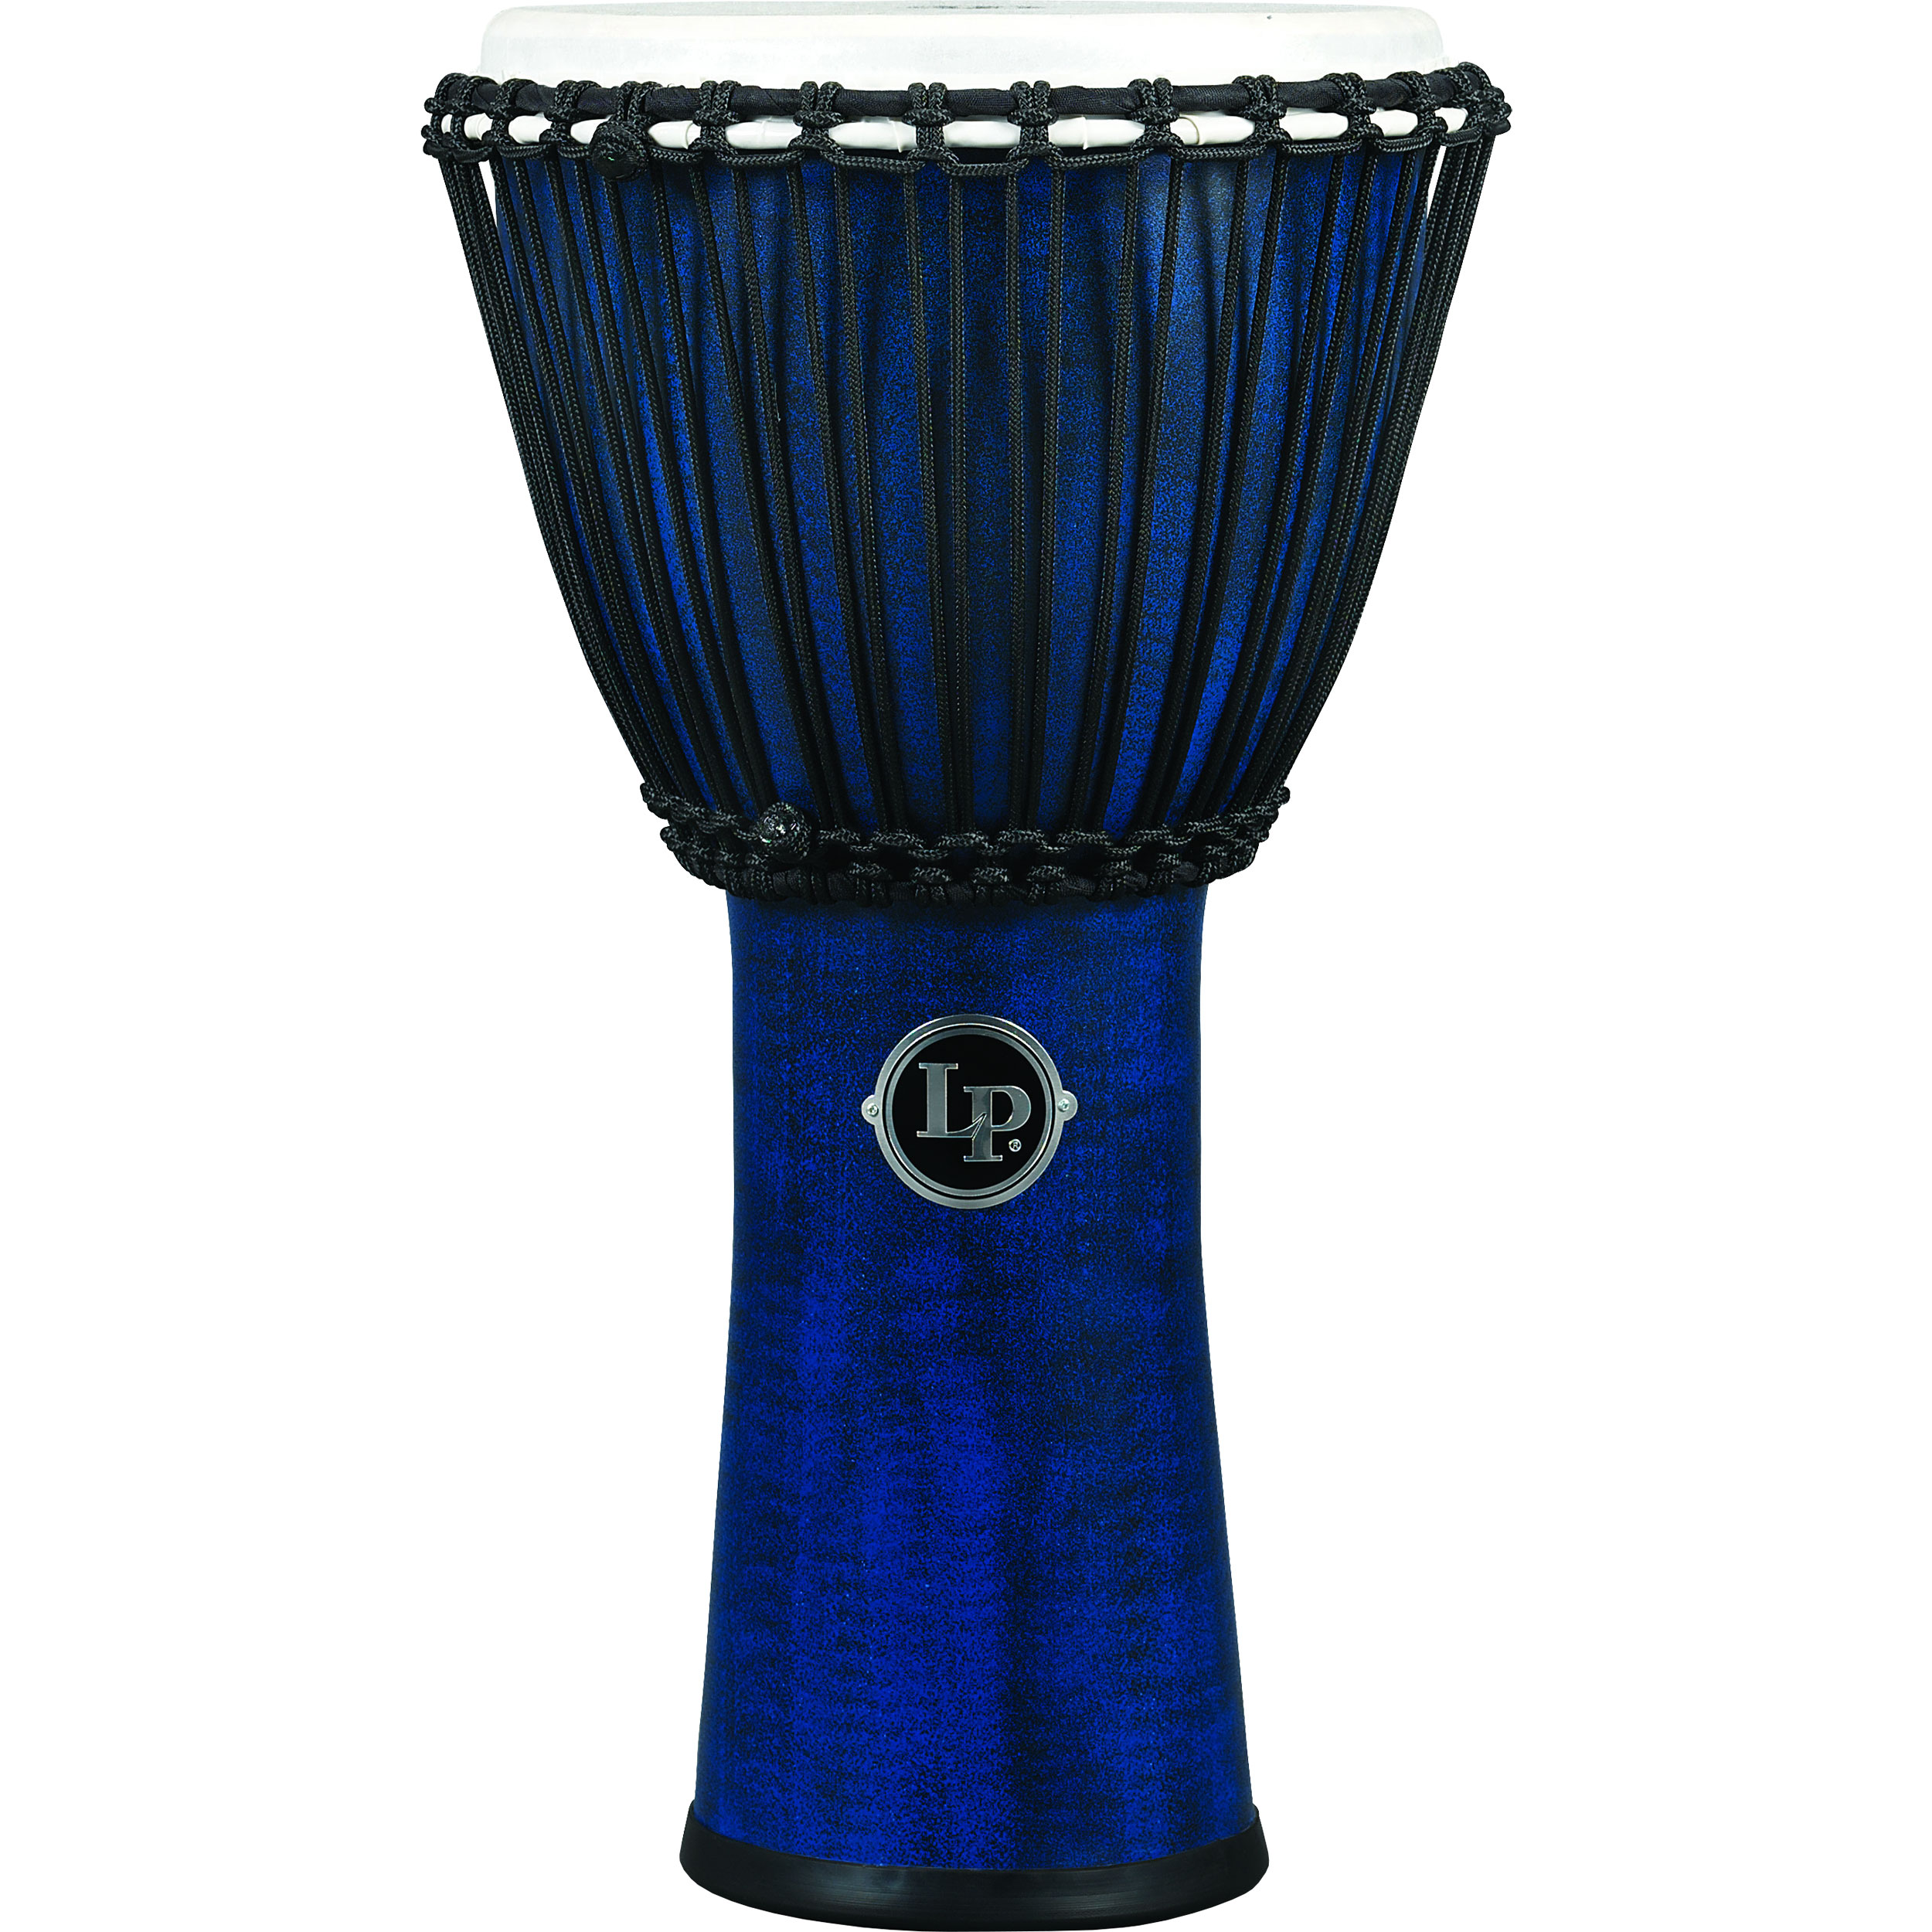 "LP 11"" FX Rope-Tuned Djembe in Blue"